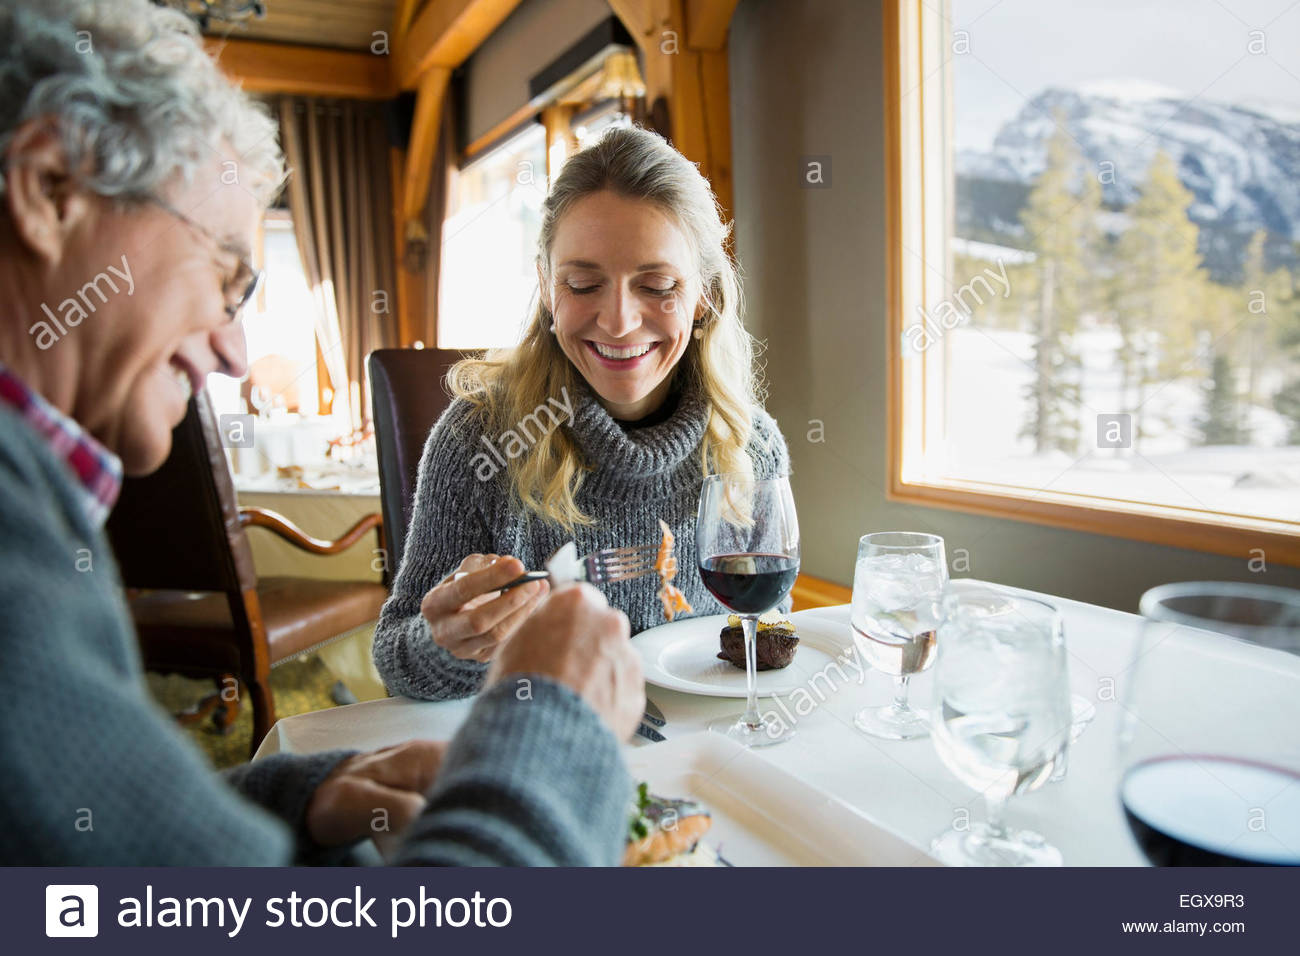 Couple eating at restaurant table - Stock Image